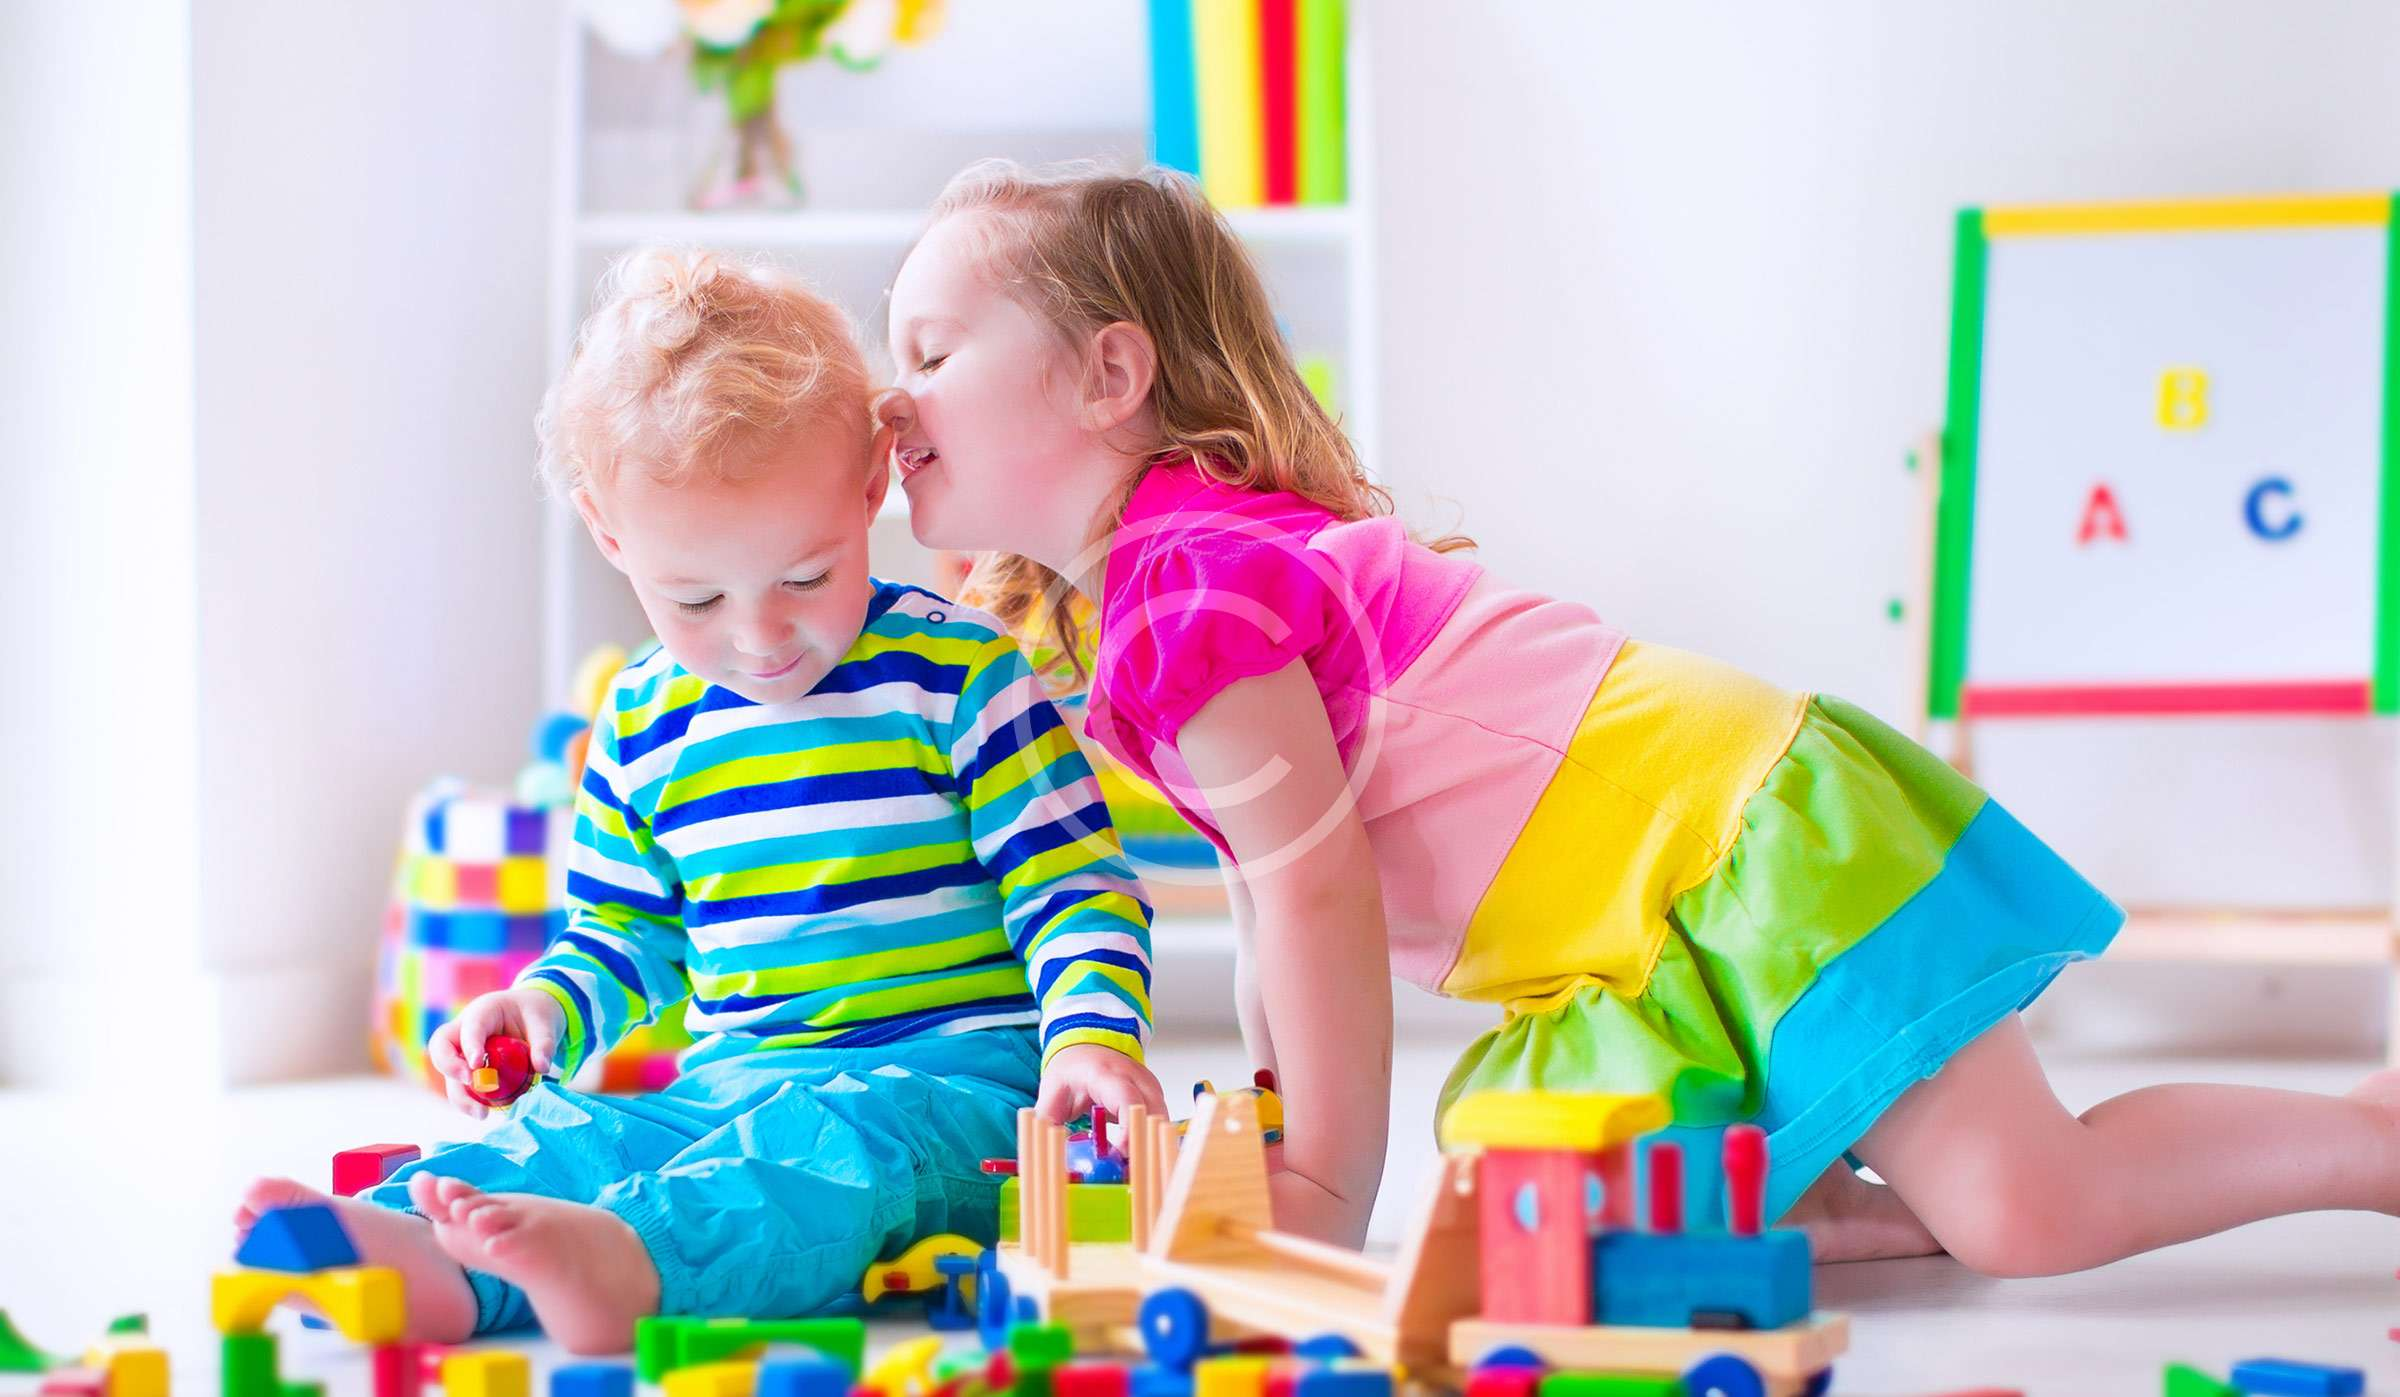 How to Find High Quality Child Care